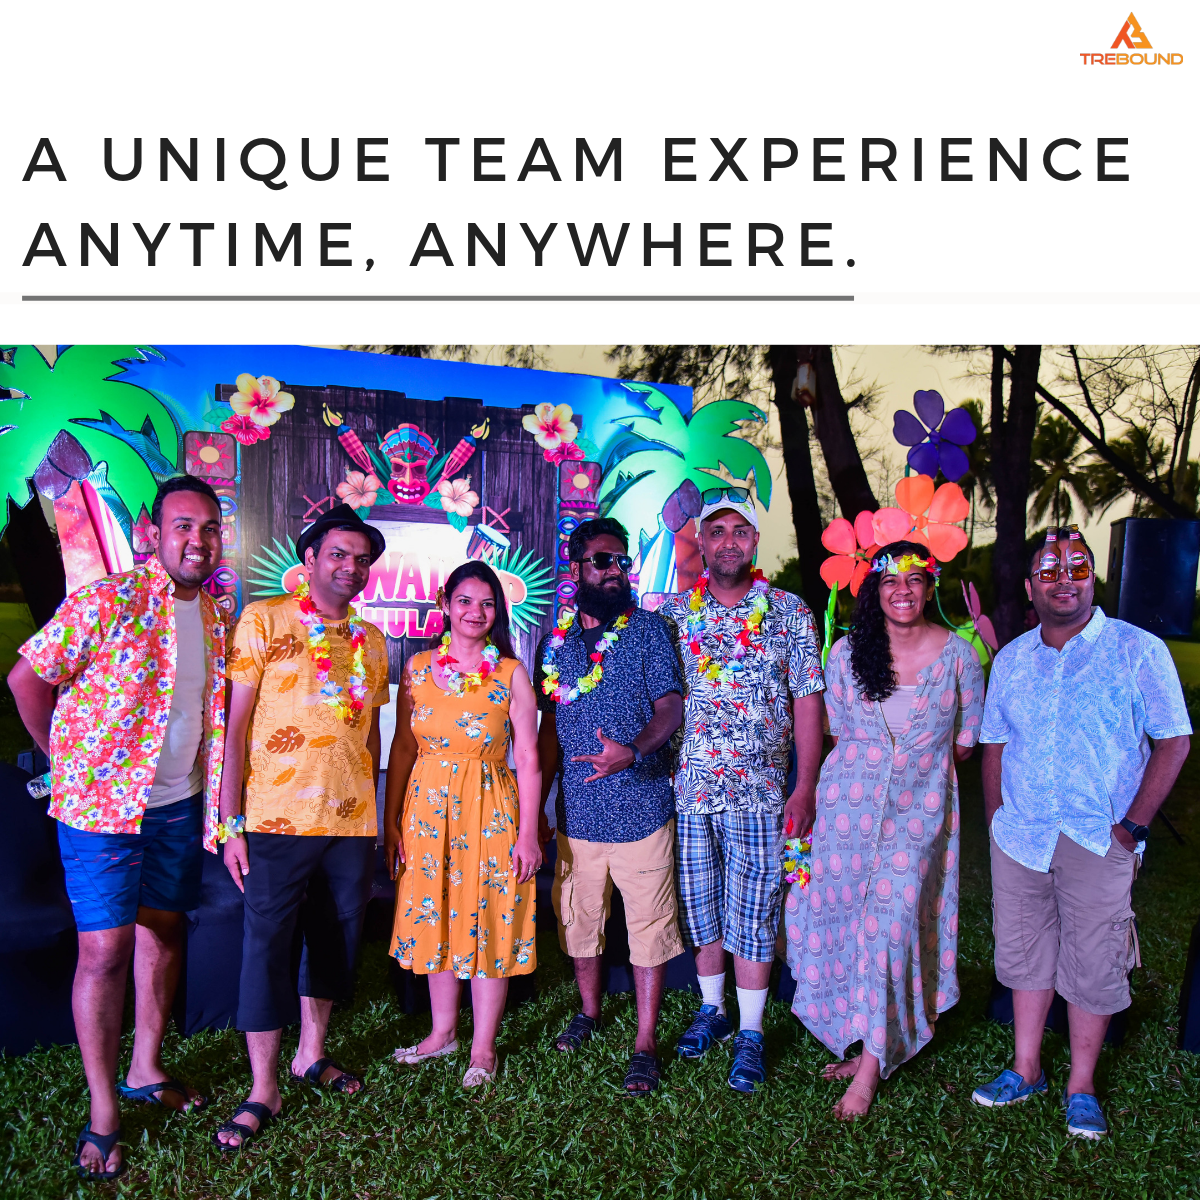 Pick from Our various effective activities which establish stronger bonds within the teams and also get unlimited FUN. Click the link. ... #teamexperiences #trebound #teambuilding #teamwork #inspiration #leadershipdevelopment #leadership #mentoring #business #inspiration #motivation #sales #hr #marketing #fun #challenges